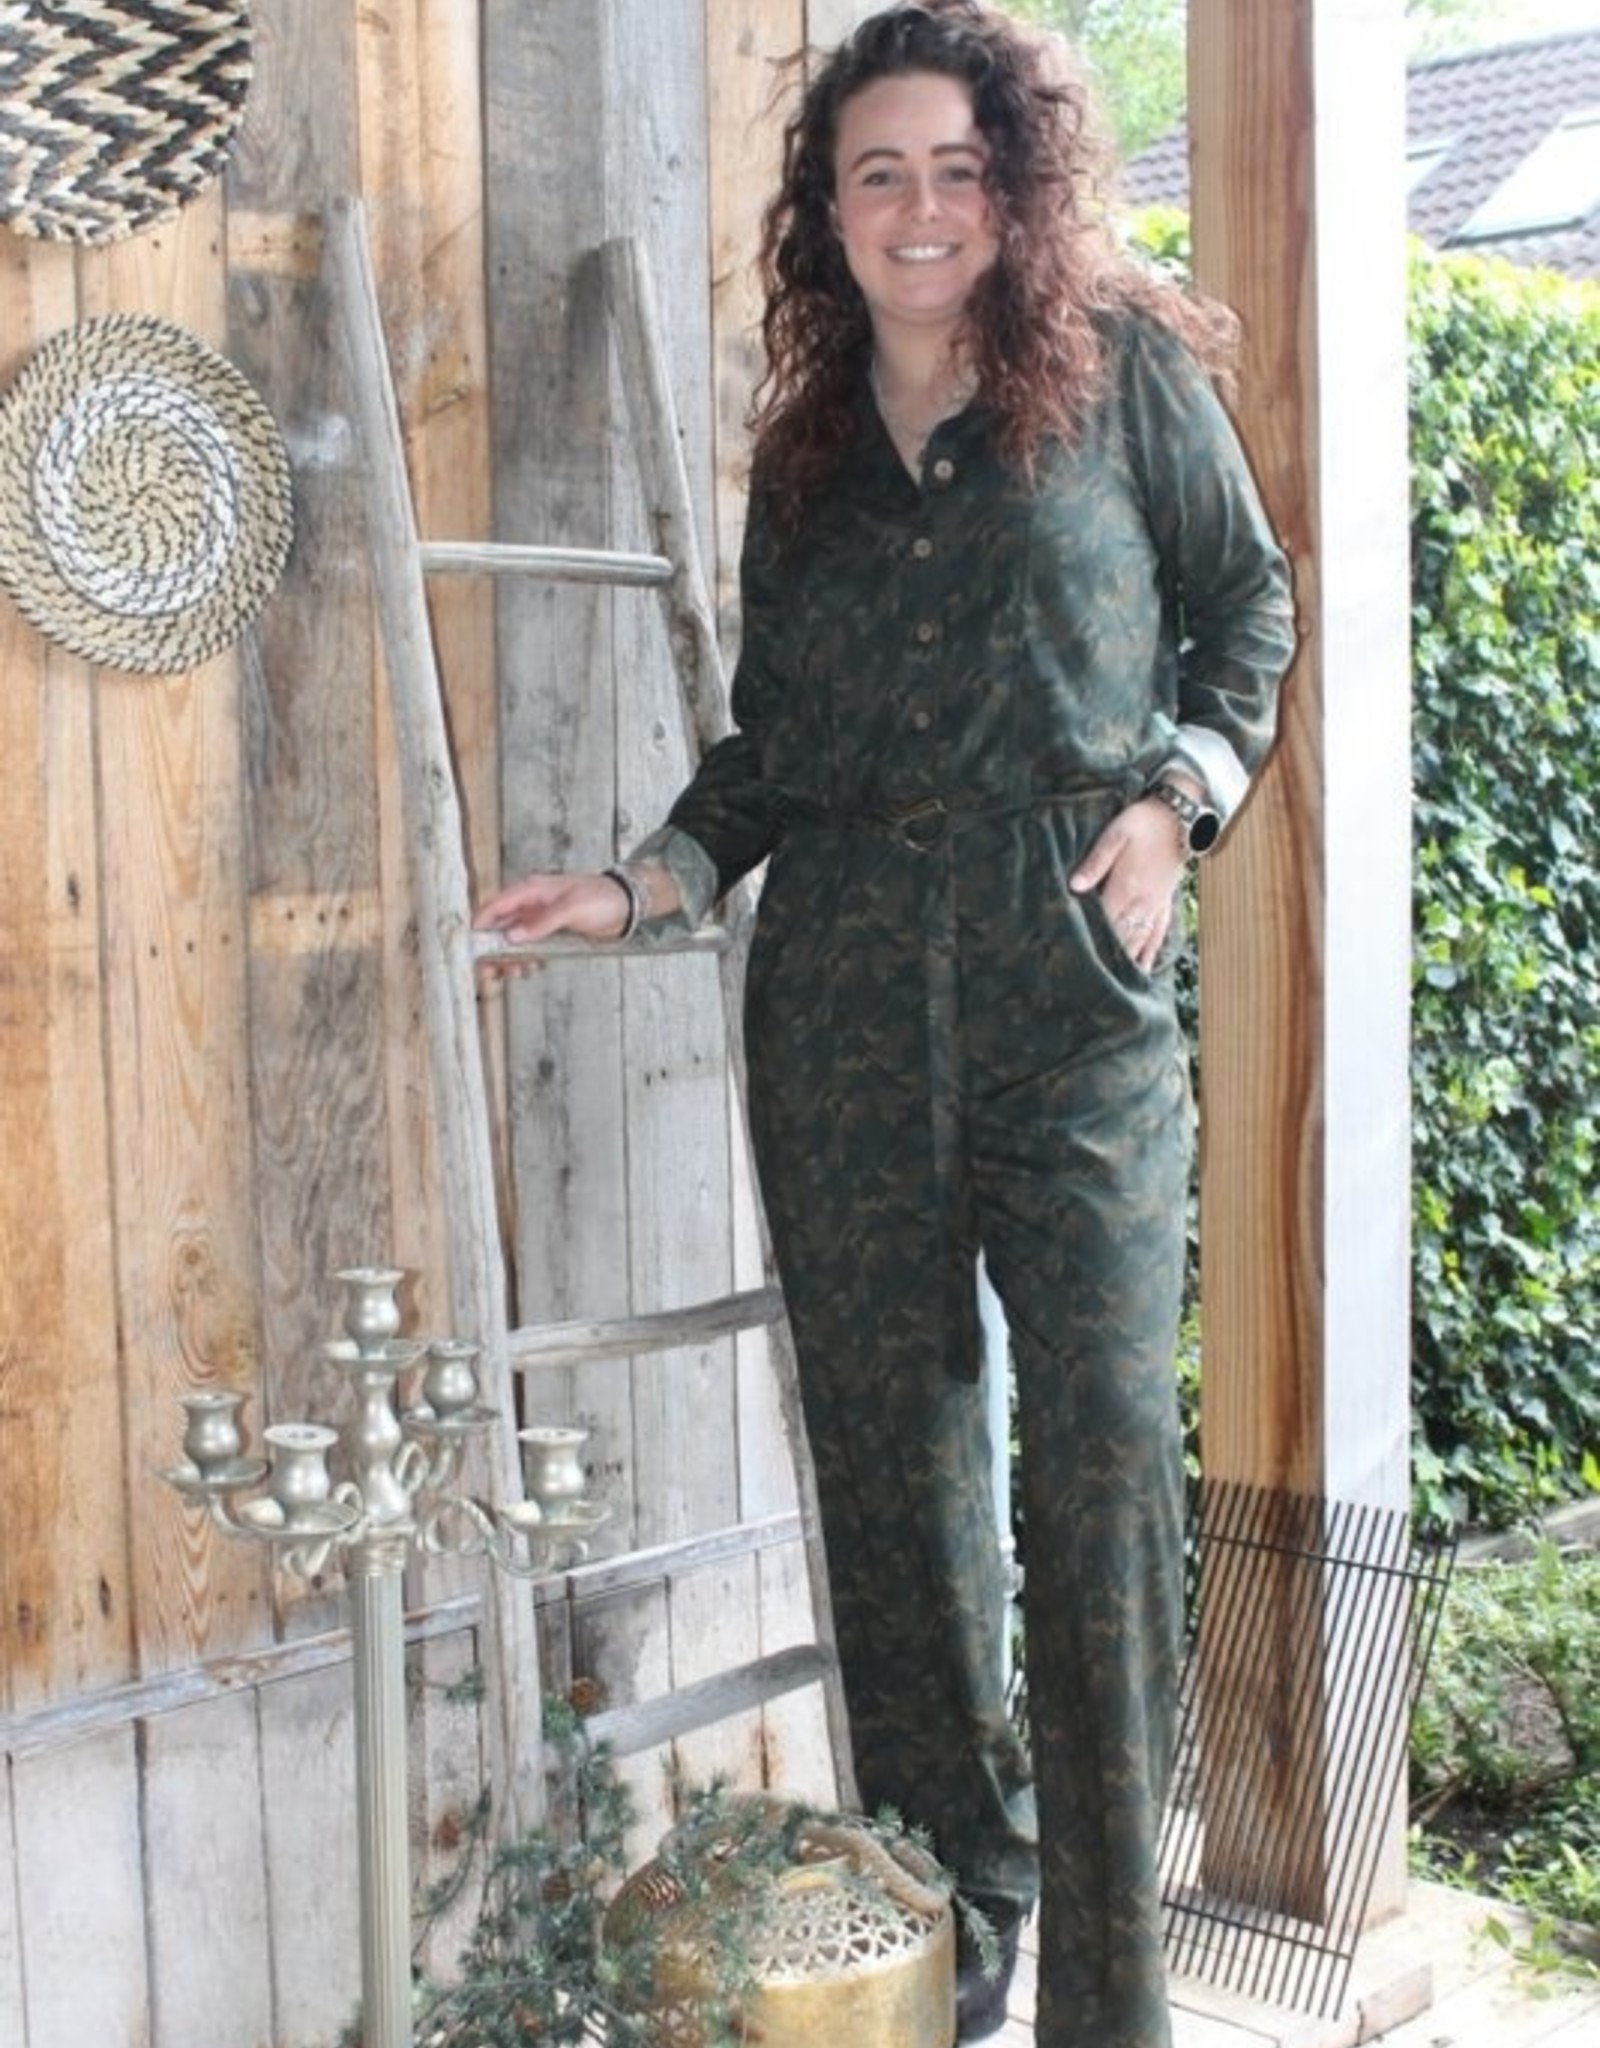 Patroon - It's a fits 1119 - Broek - Overall